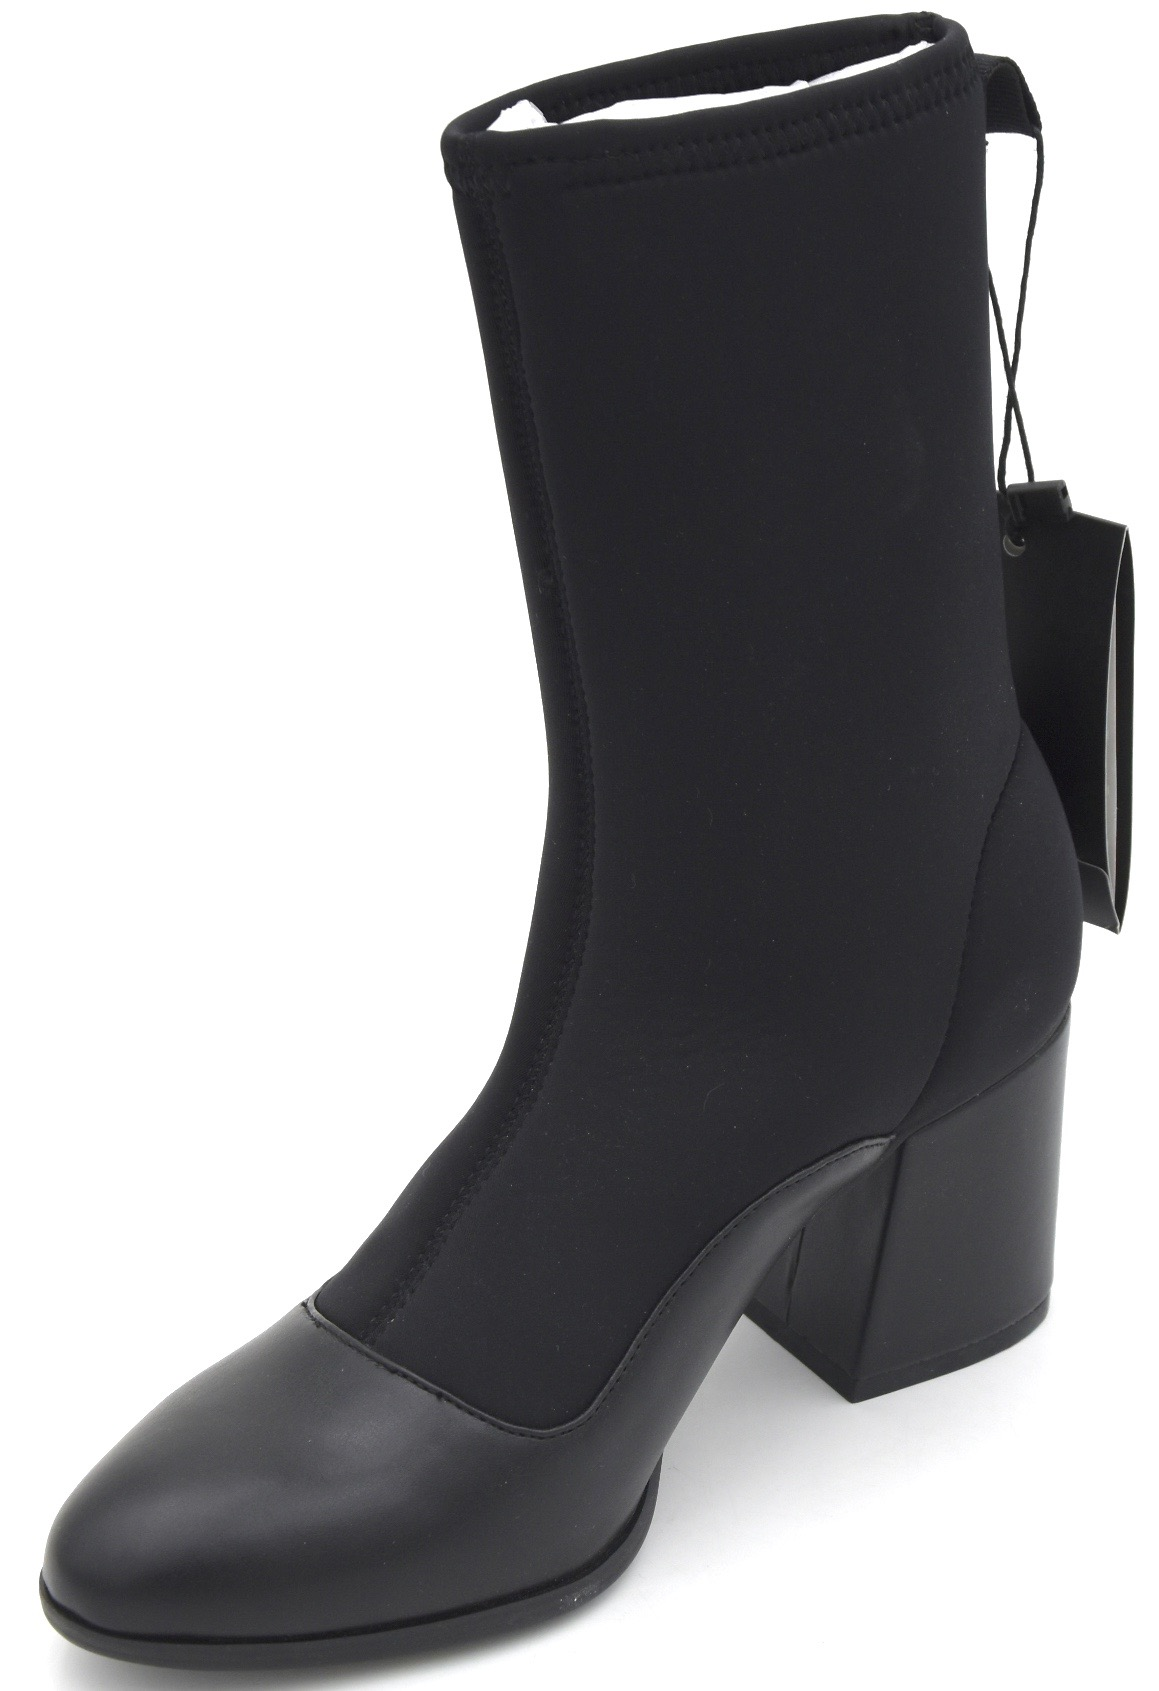 2bb5fe8b1c Details about ARMANI EXCHANGE WOMAN ANKLE BOOTS BOOTIES WINTER CASUAL CODE  XDN003 XV056